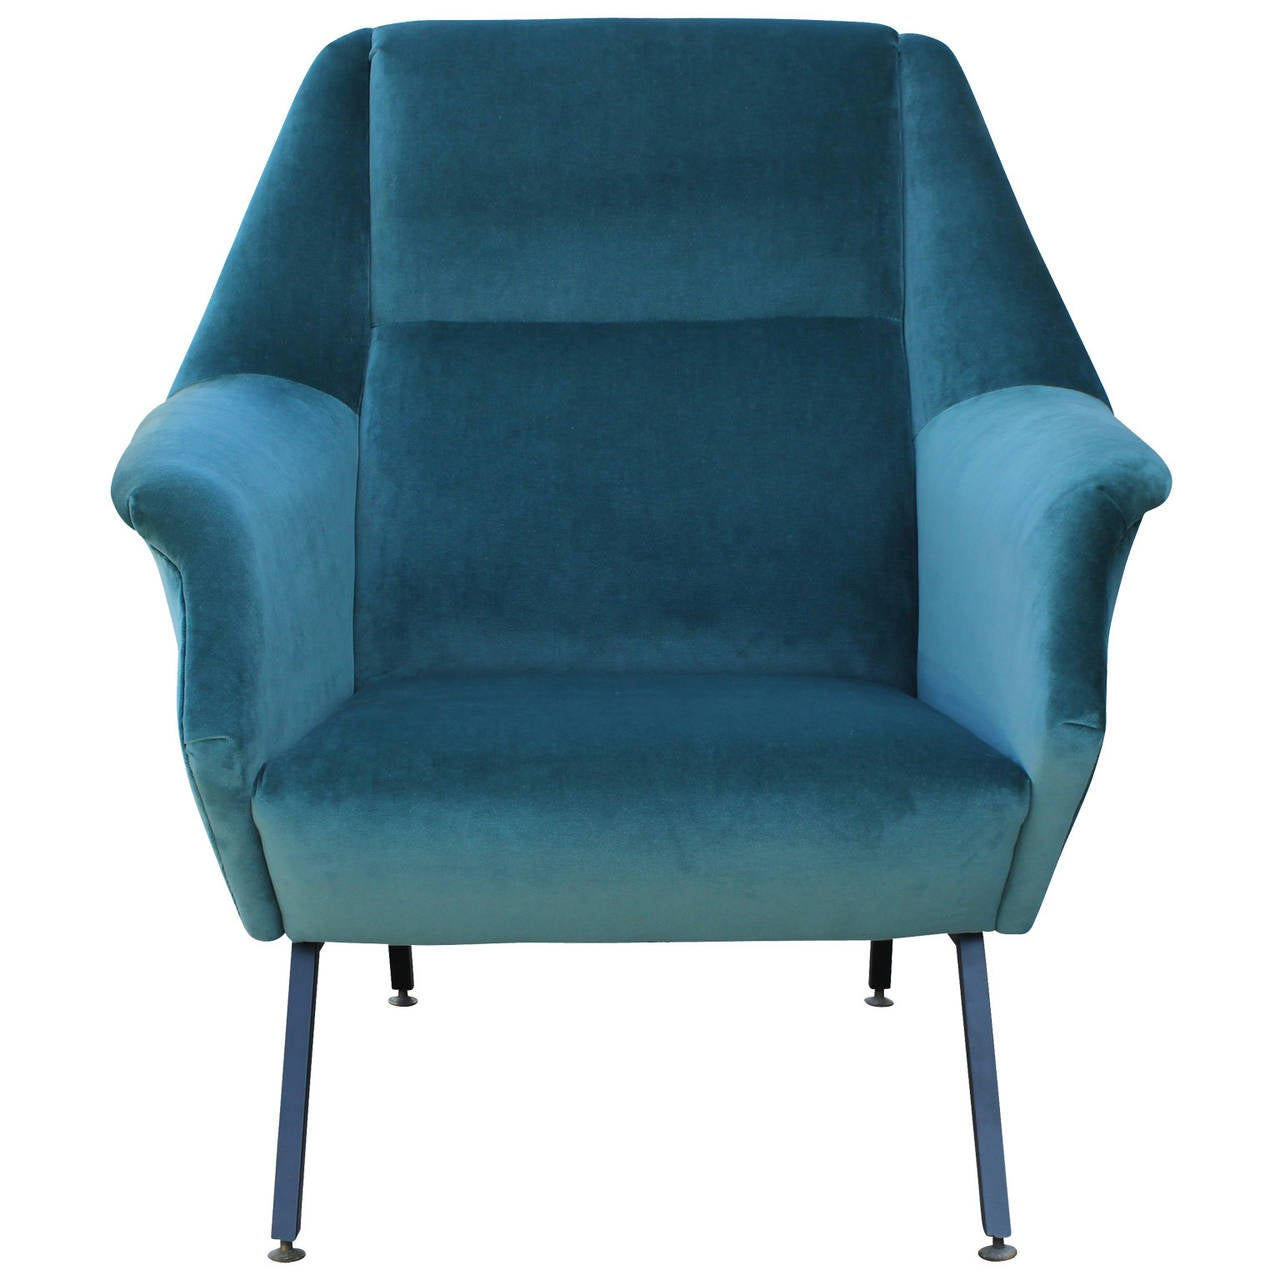 Teal Chair Pair Of Fabulous Italian Lounge Chairs In Teal Velvet At